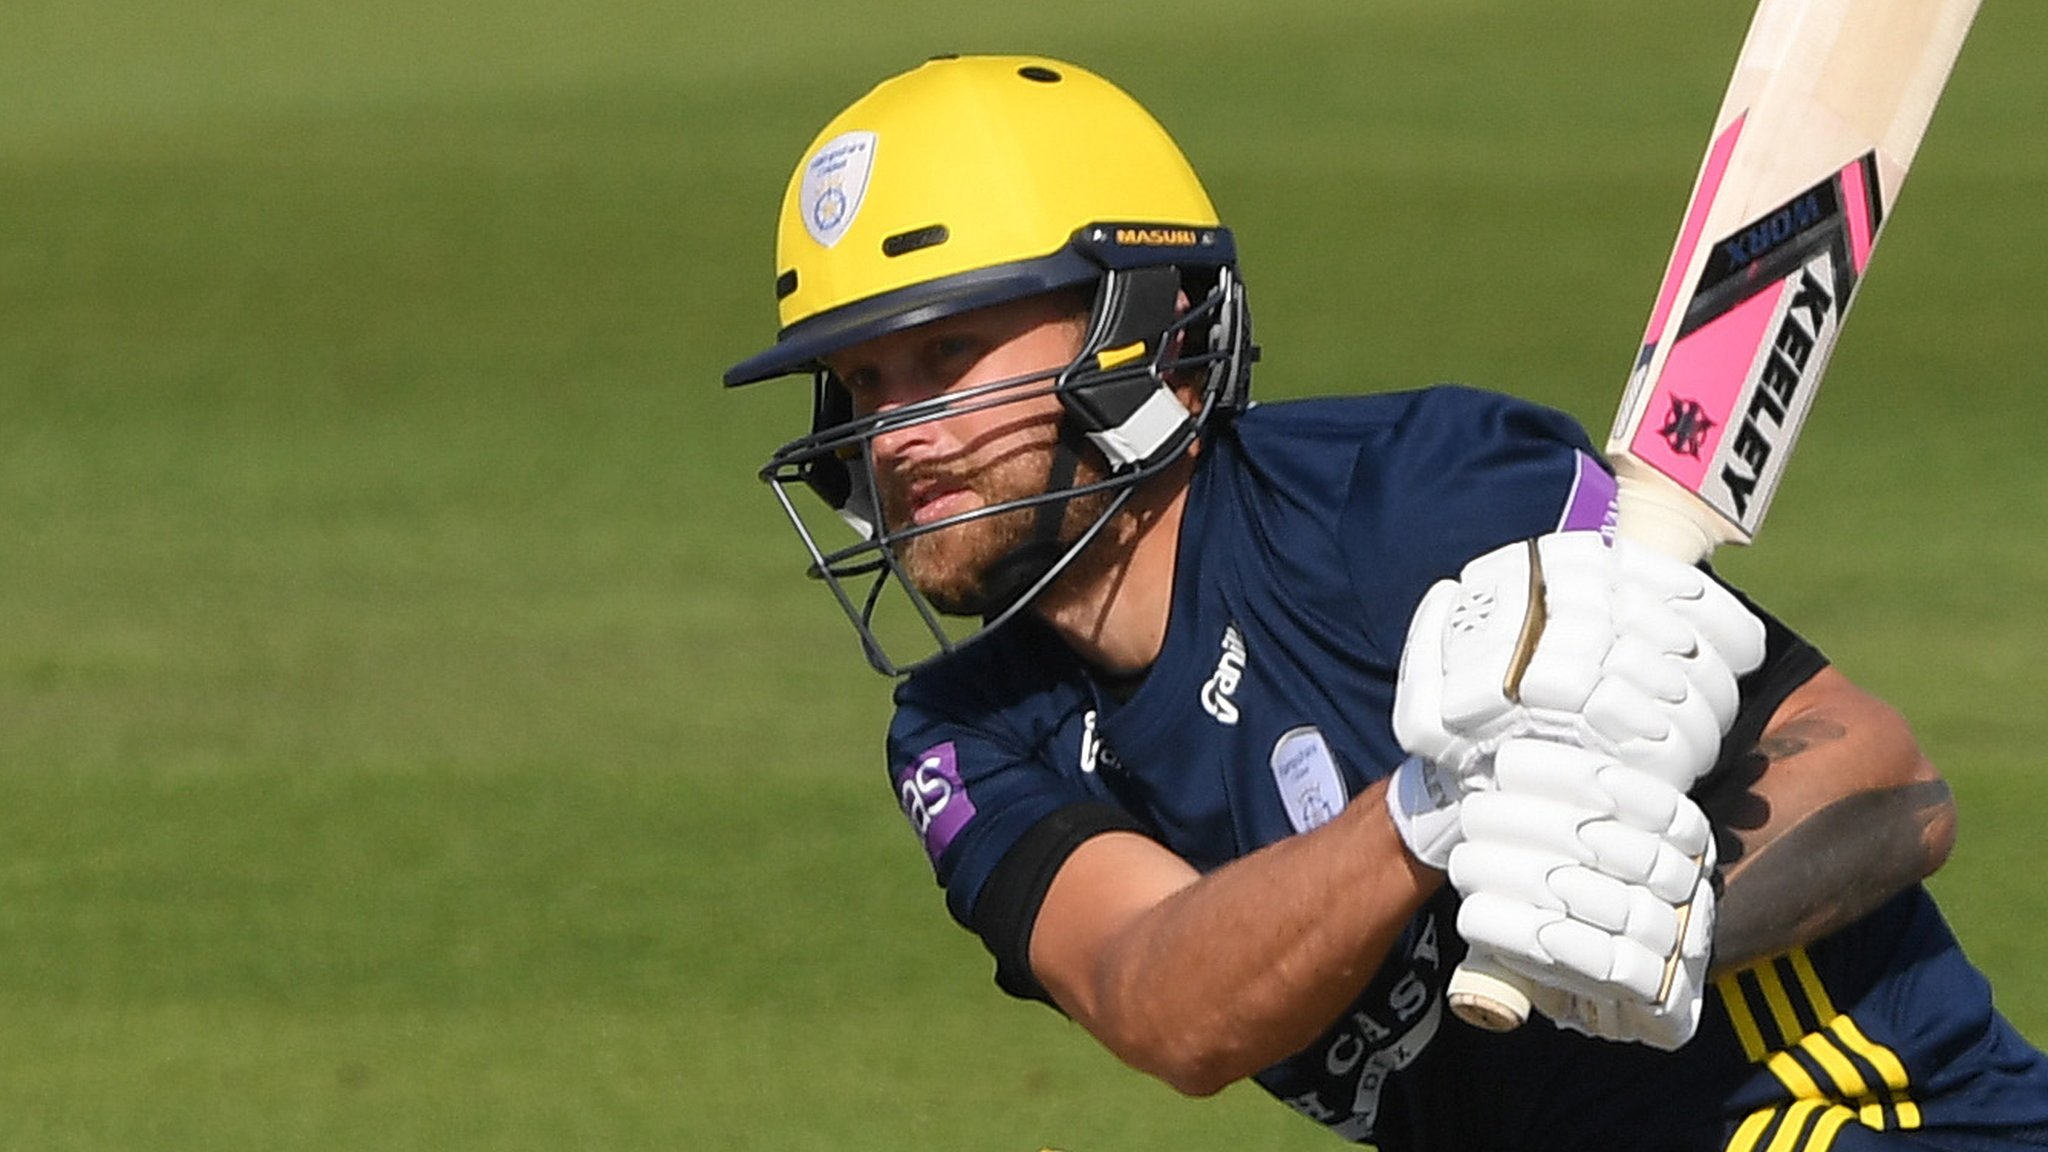 One-Day Cup: Gareth Berg stars as Hampshire beat Sussex